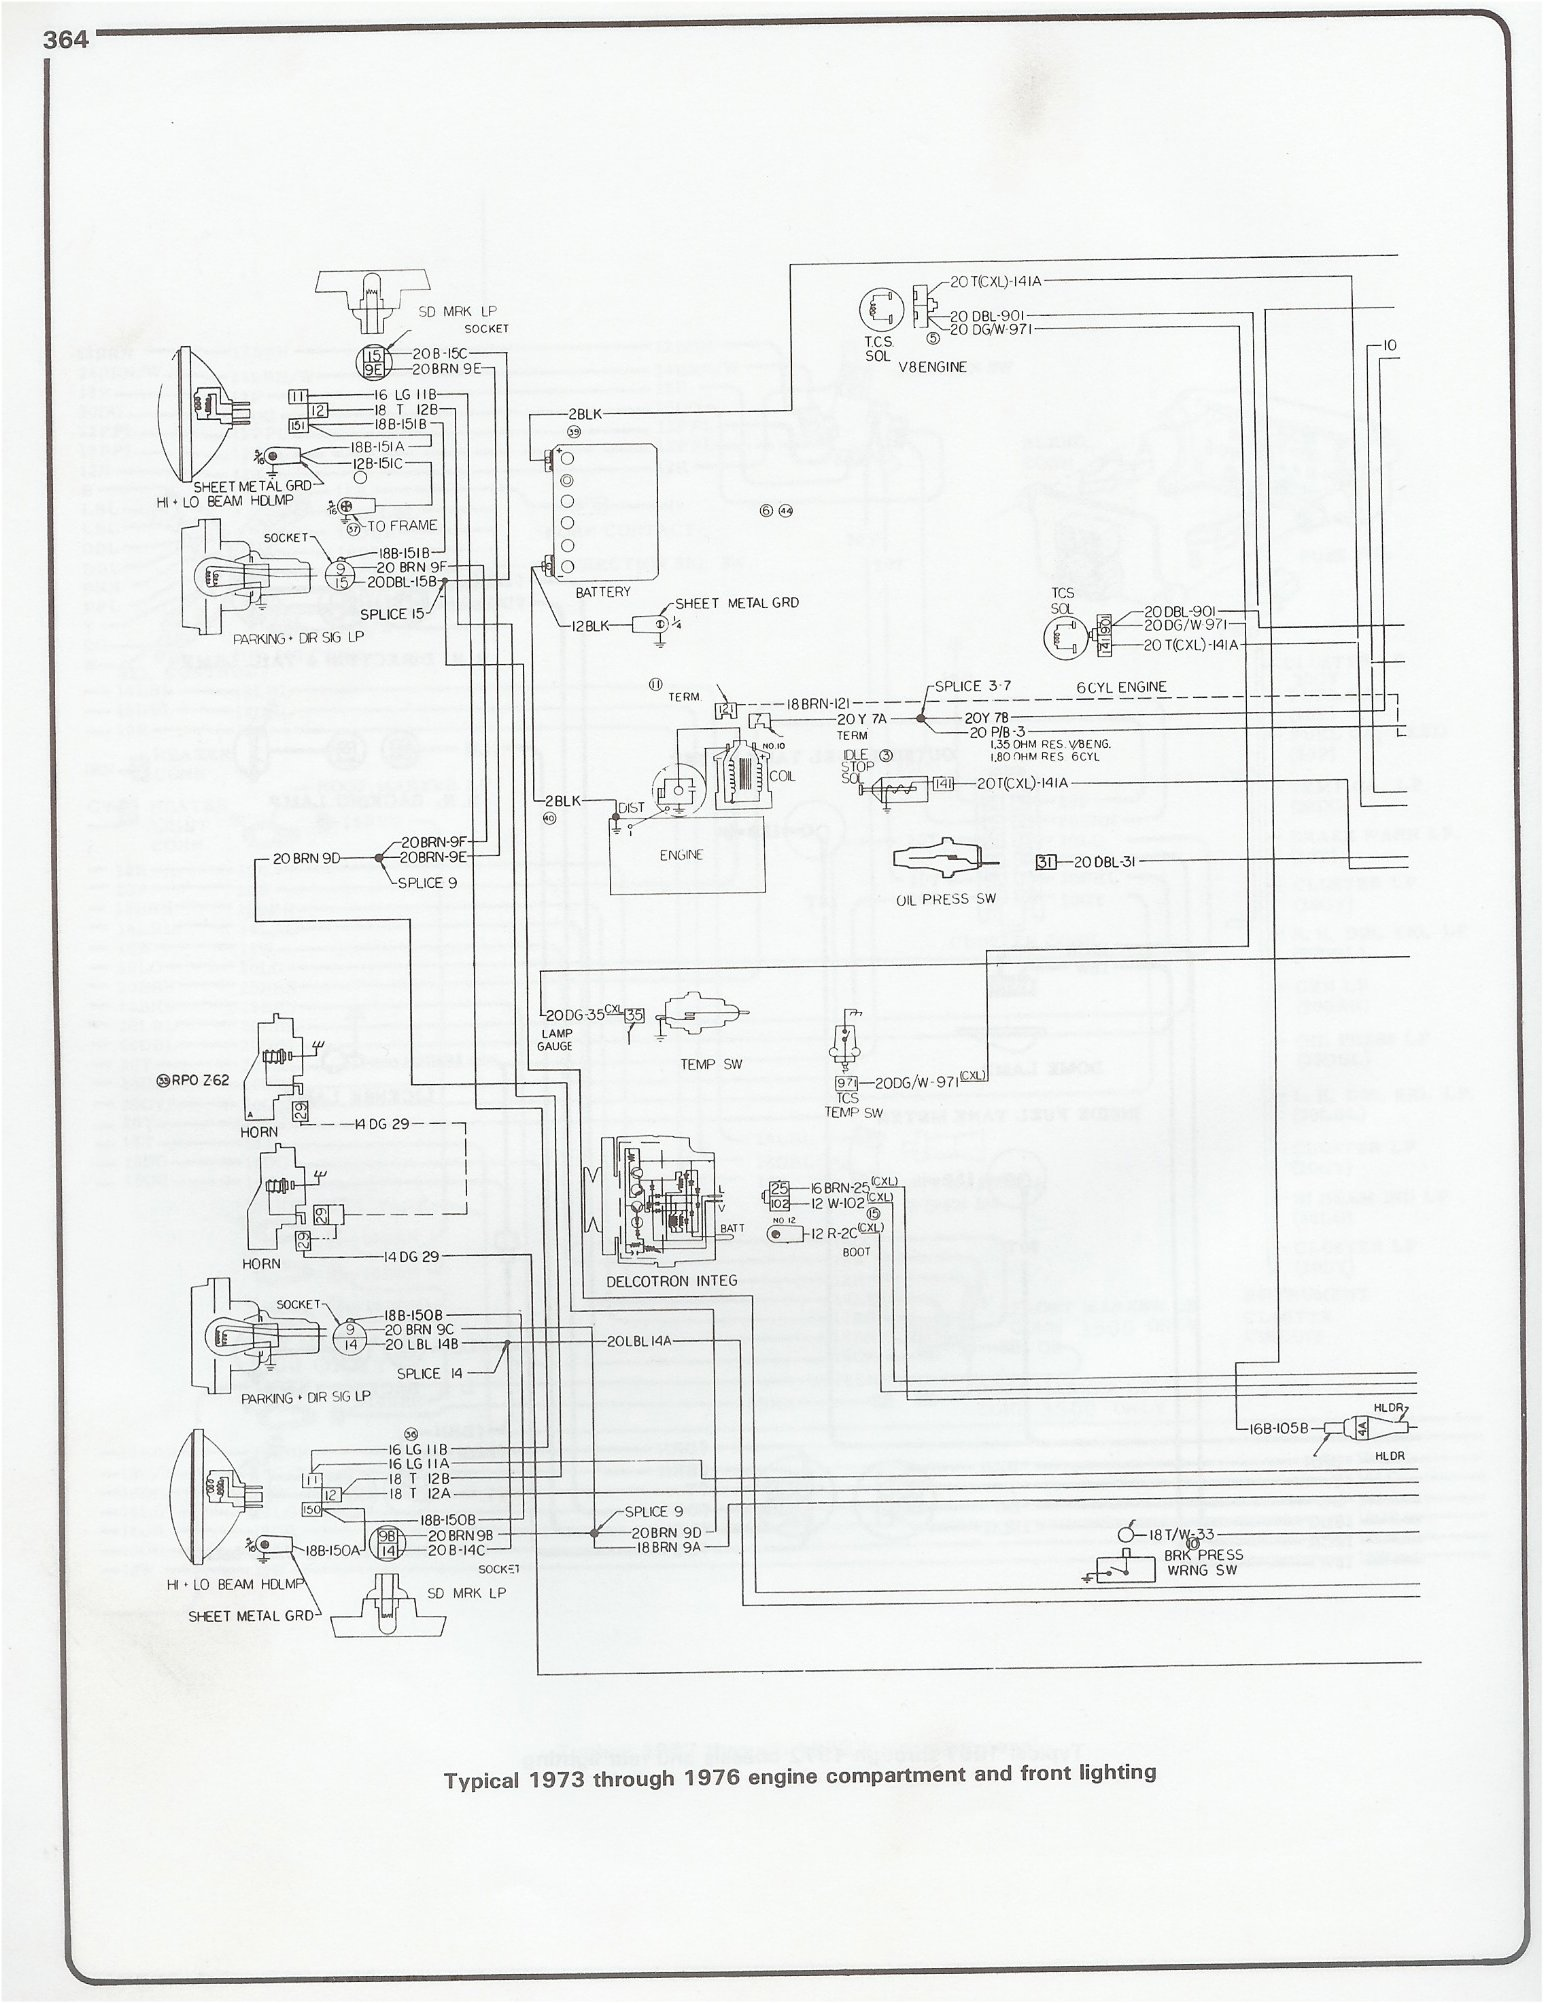 Complete 73-87 Wiring Diagrams on 85 c10 wheels, 85 c10 lights, 85 c10 frame, 85 c10 accessories, 85 c10 fuel tank, 85 c10 door, 85 c10 horn, 85 c10 parts, 85 c10 engine, 85 c10 suspension,